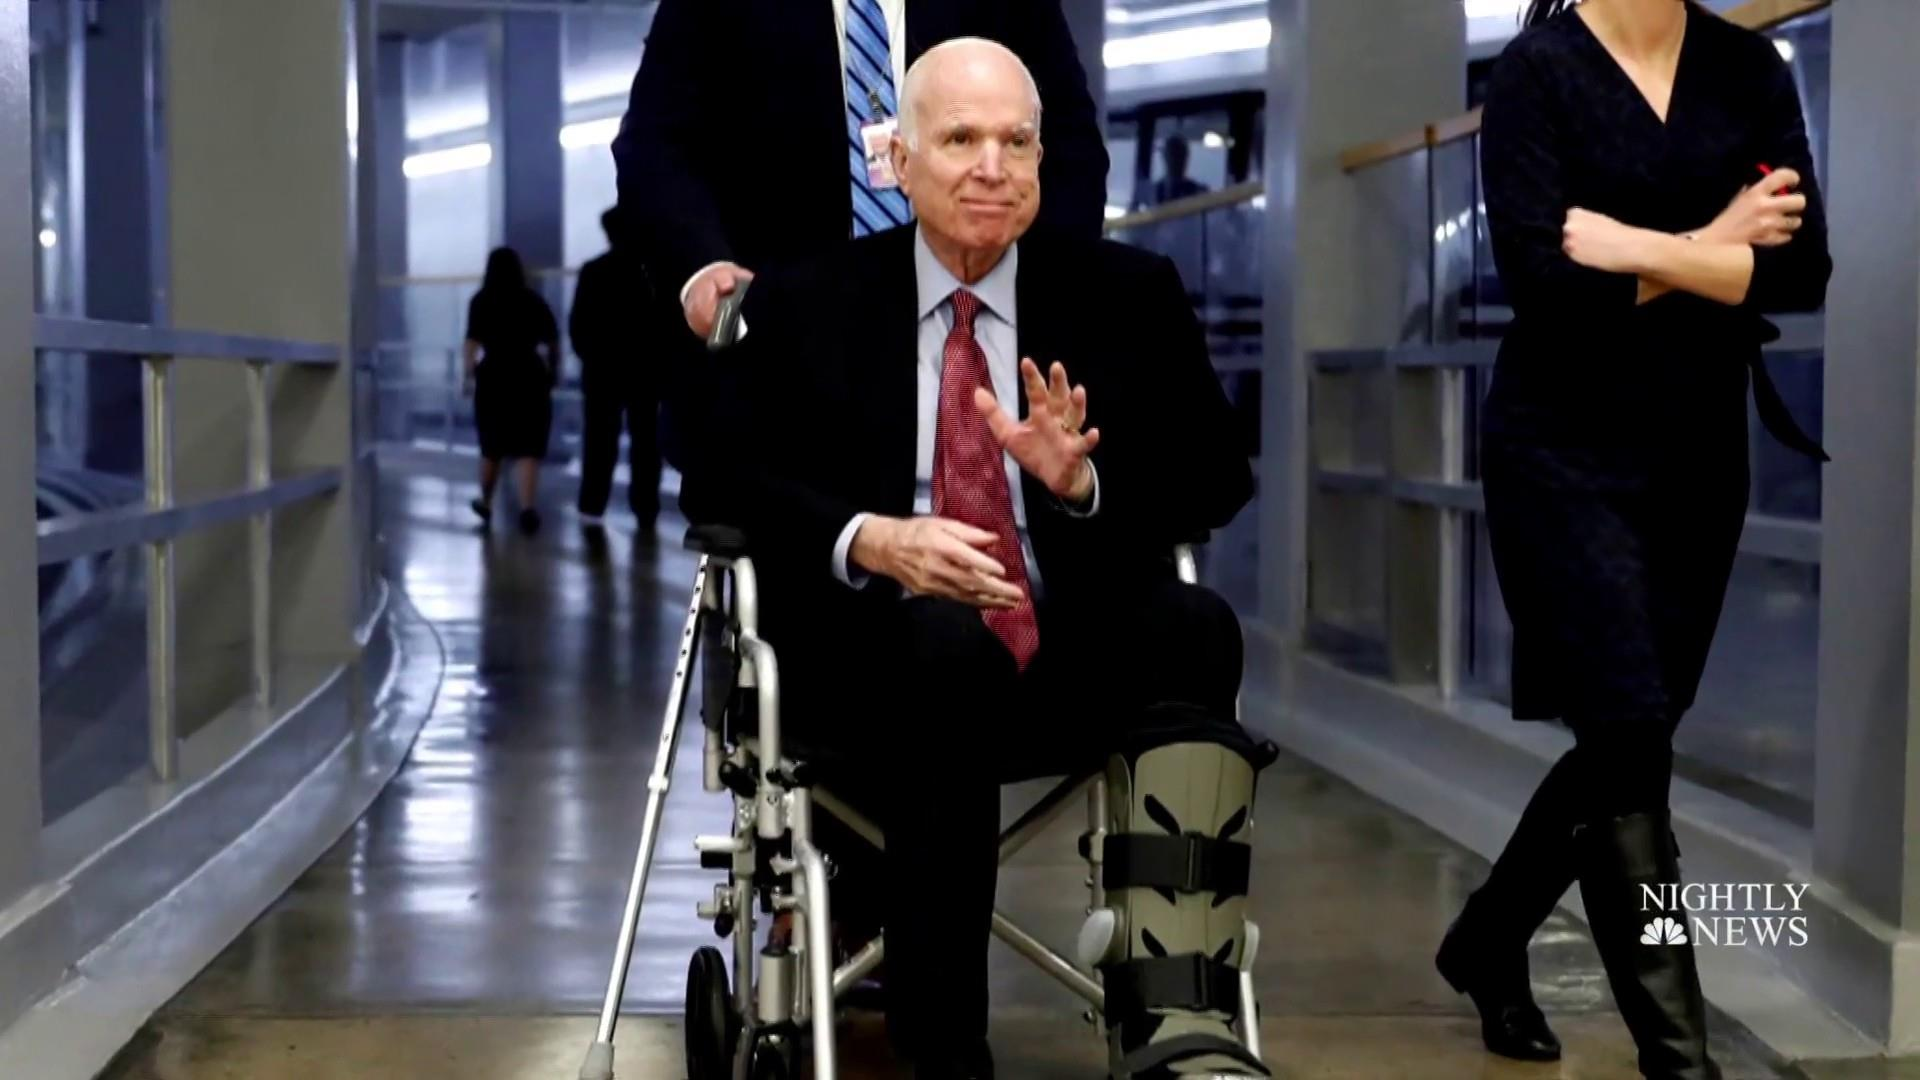 John McCain may never cast another vote in the U.S. Senate. But he plans to stay in Arizona and the U.S. Senate, according to a high-level White House source, regardless of GOP-backed pressure for him to retire from the Senate. Met with D.C. heavyweight source today very plugged in who said McCain refuses to step …